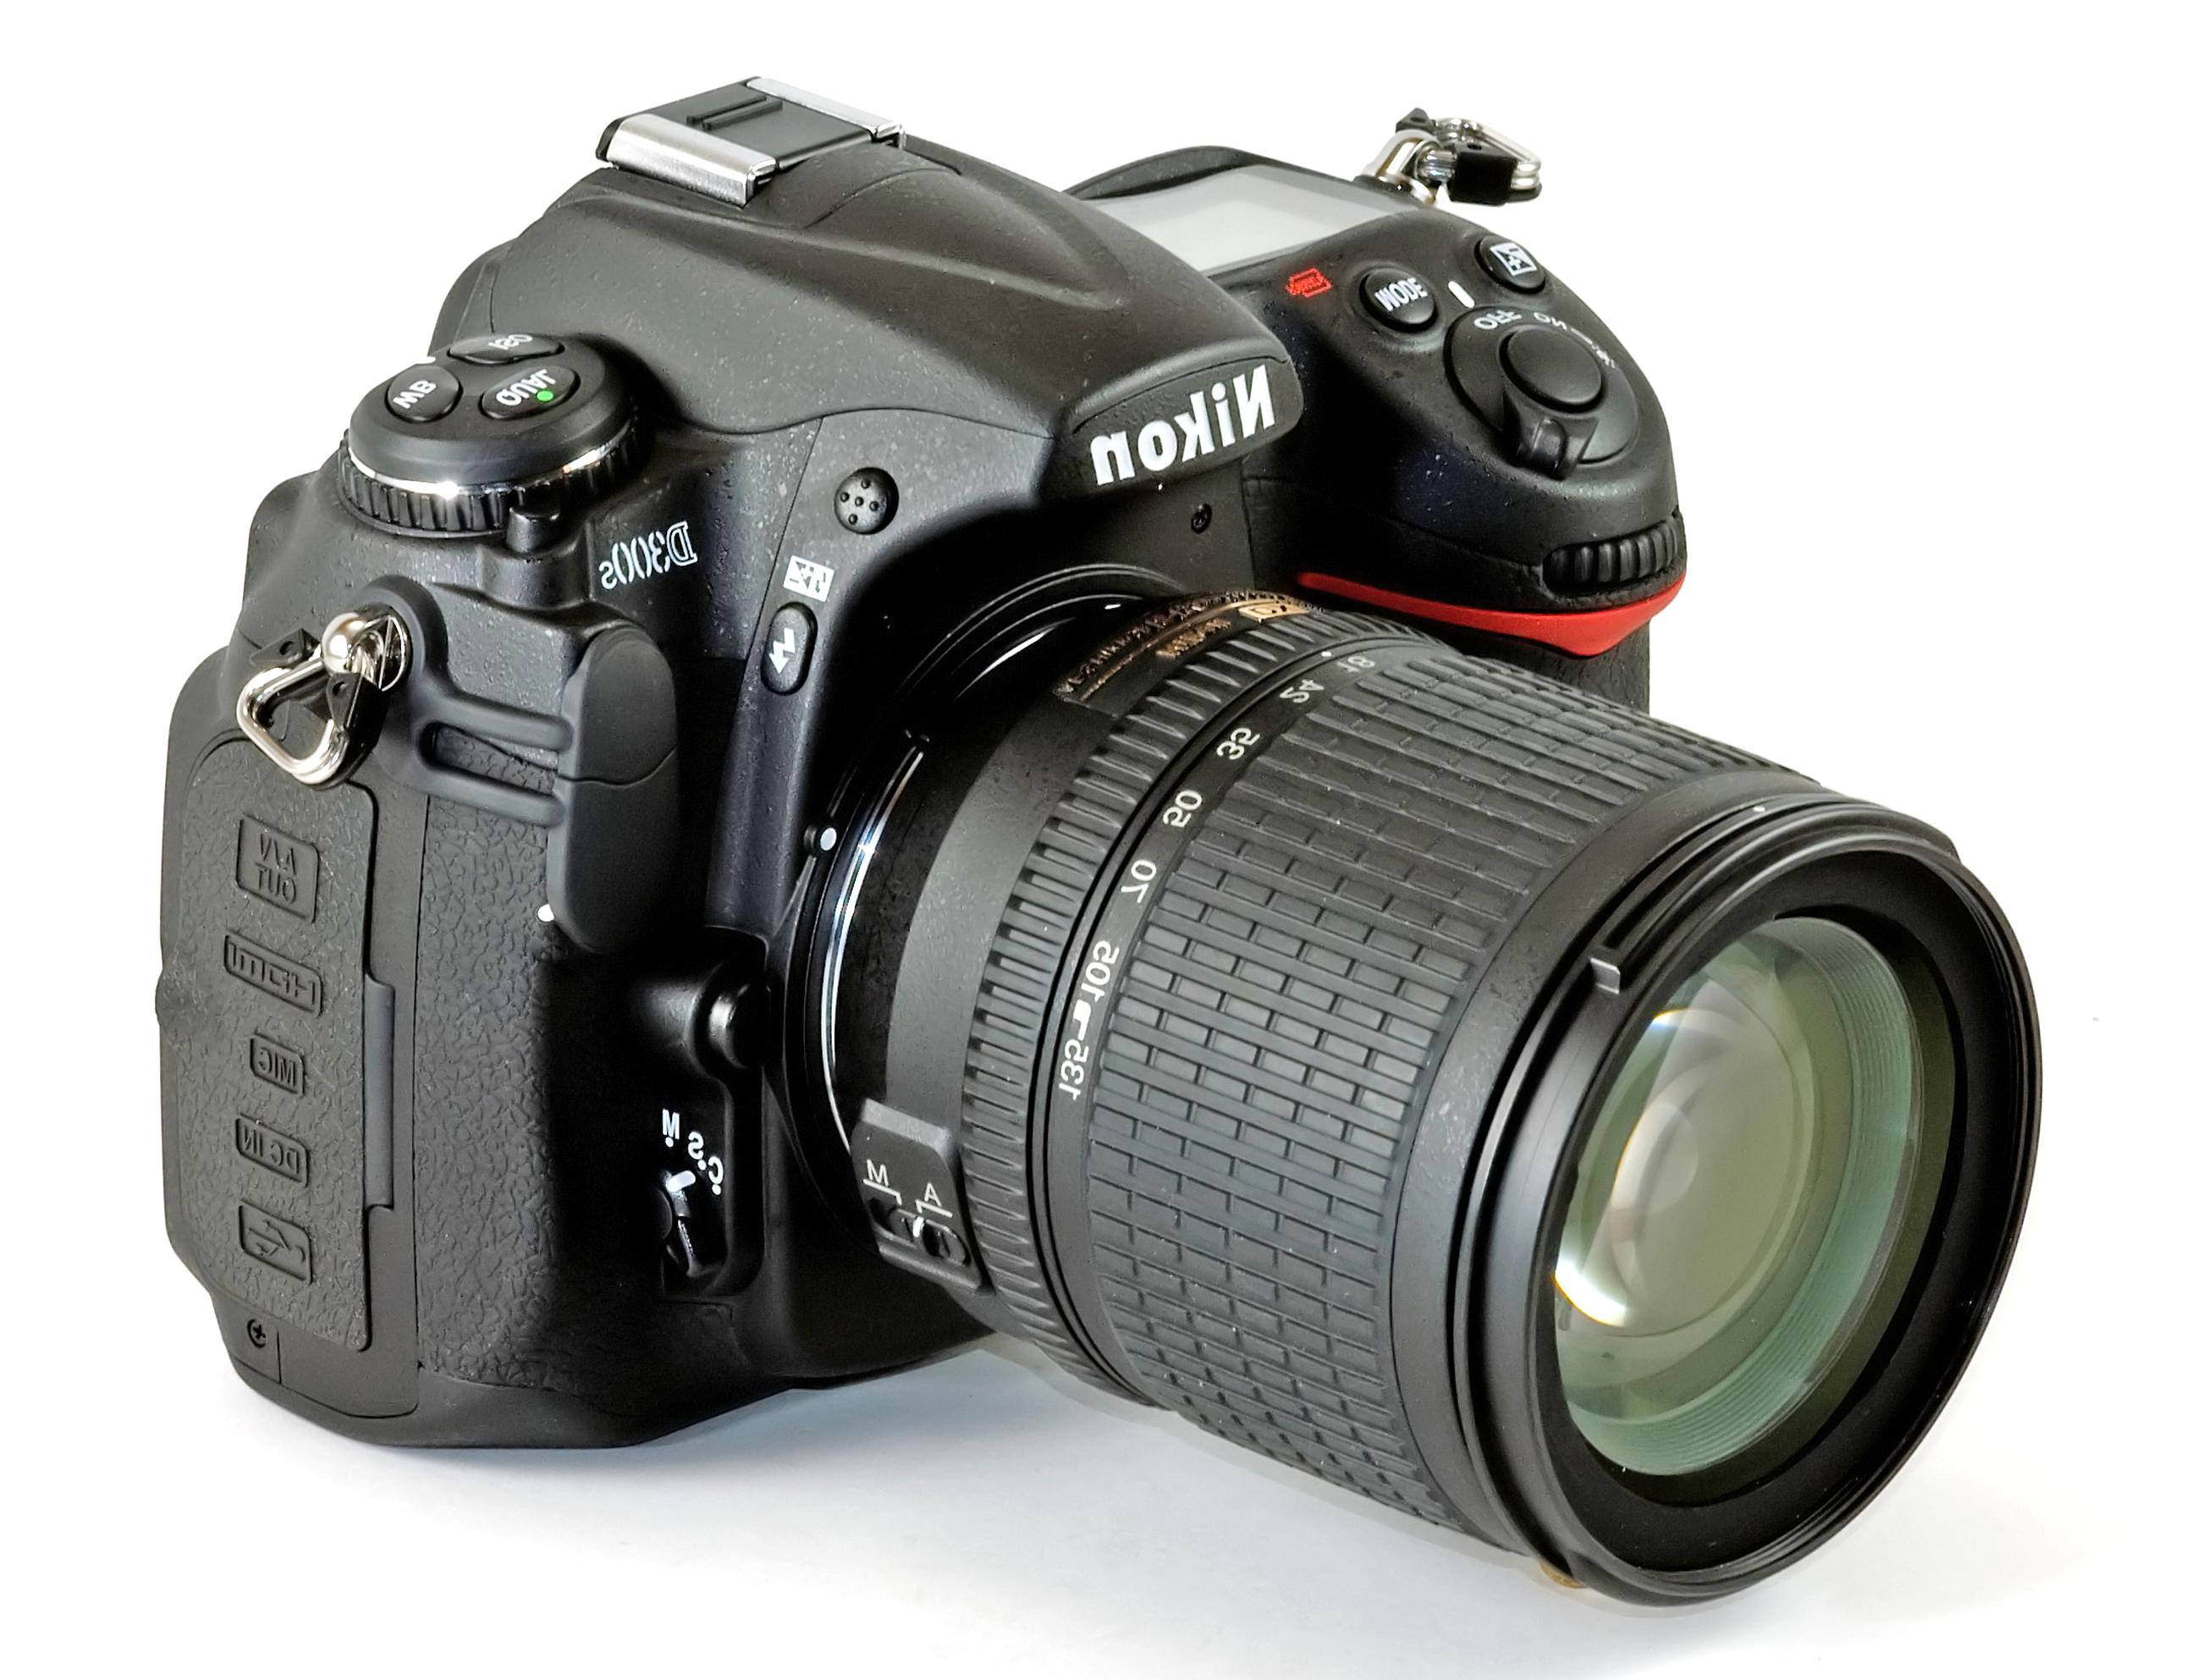 d300s for sale